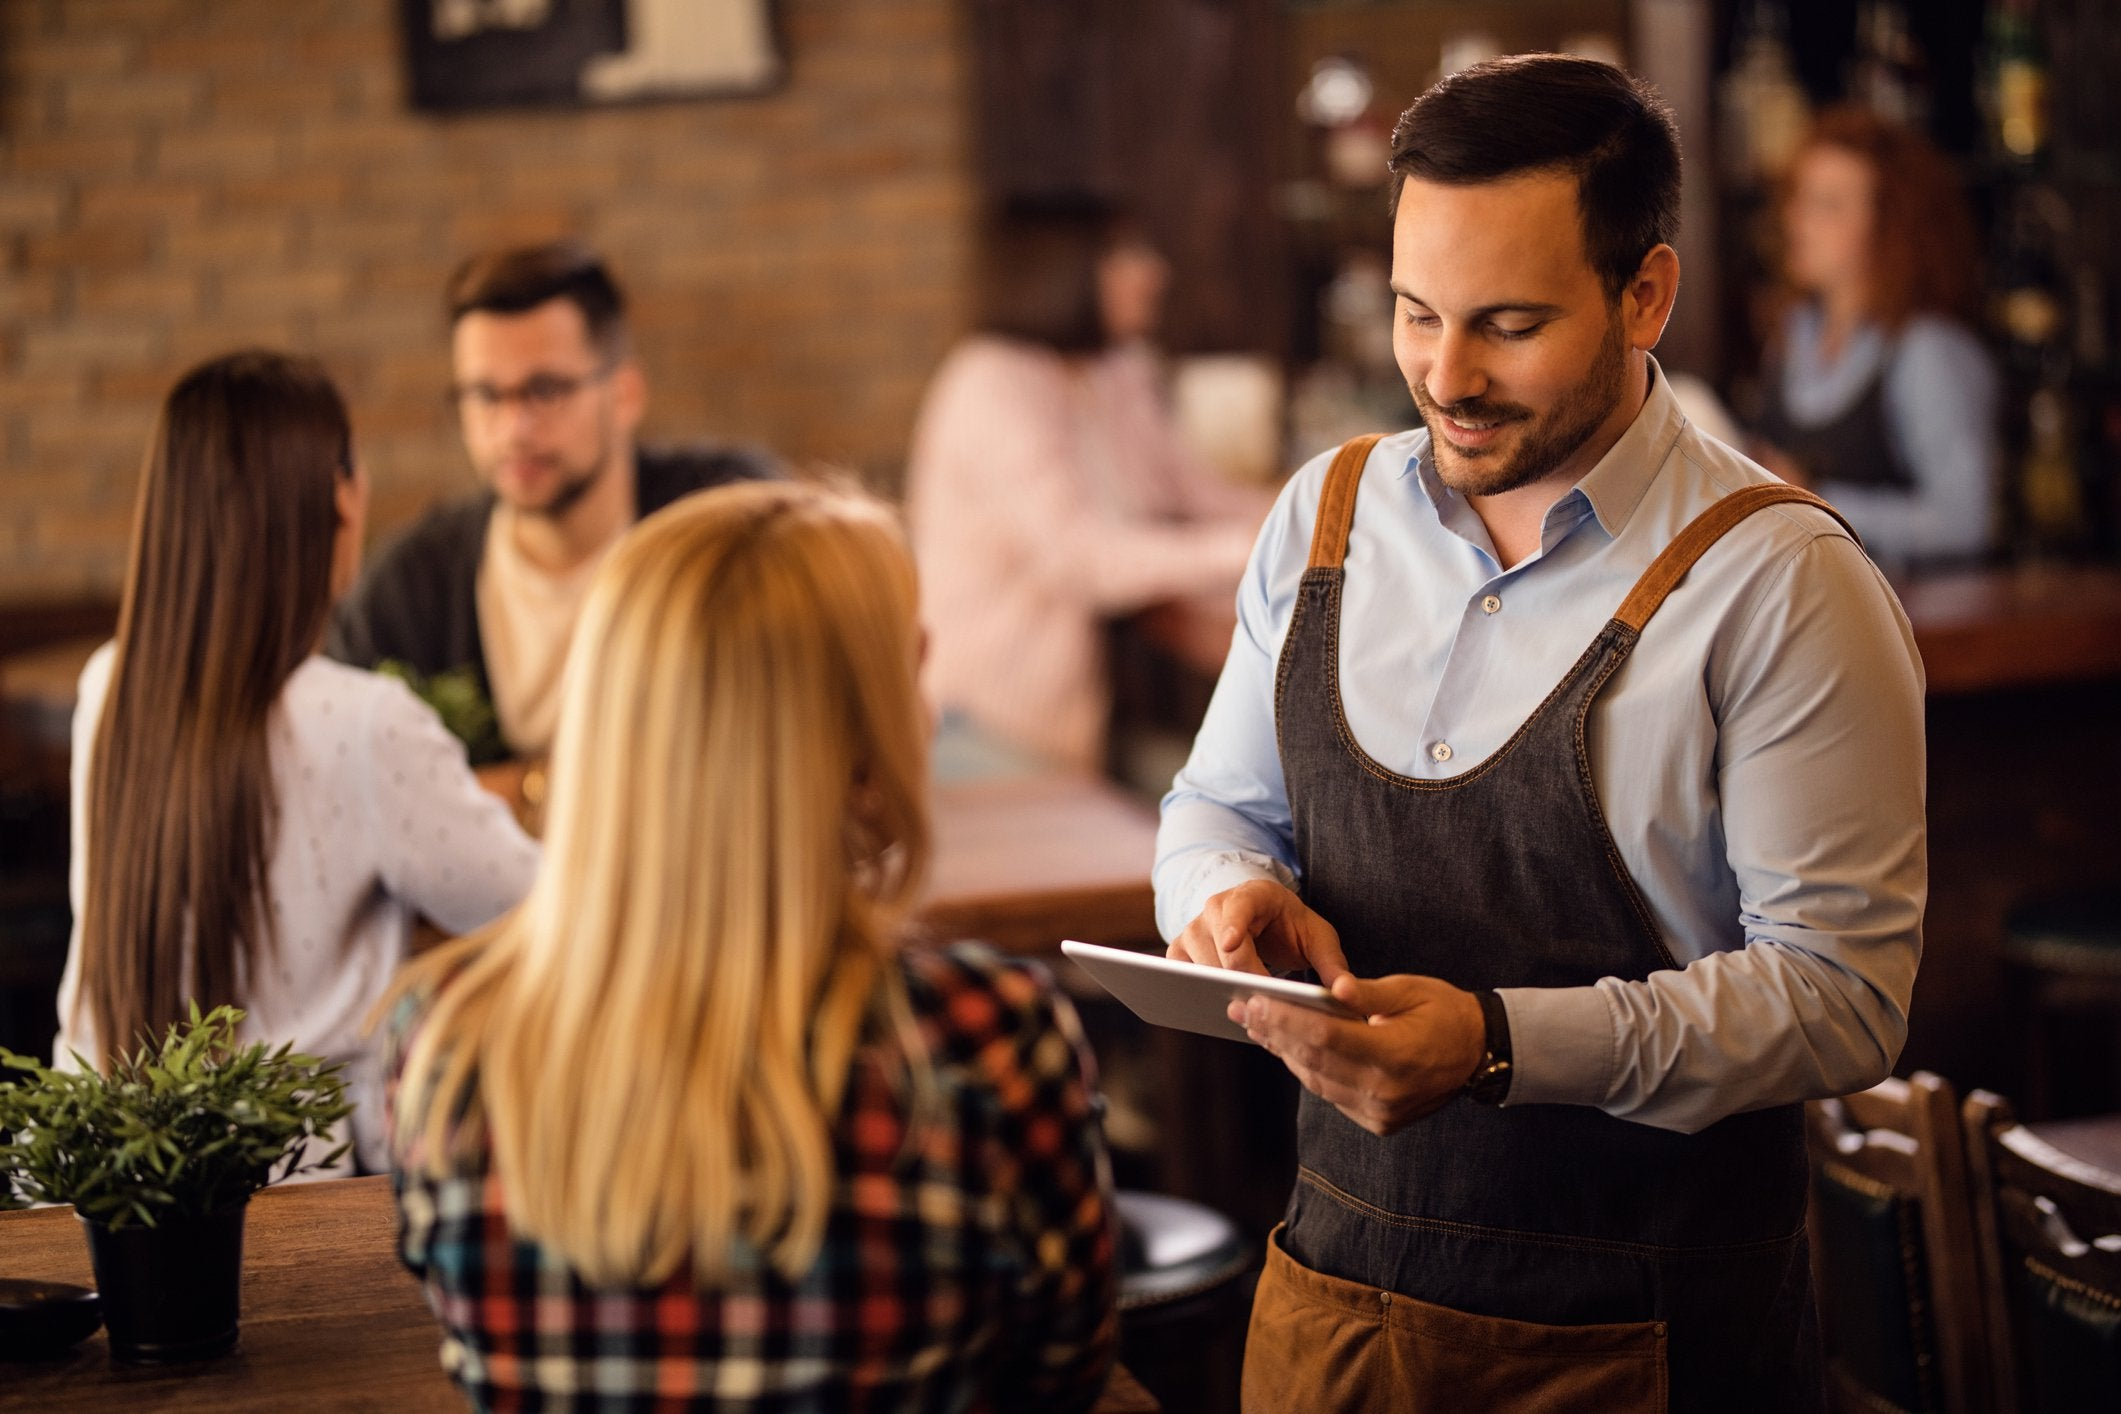 5 Ways Technology Can Save Your Restaurant Time and Money